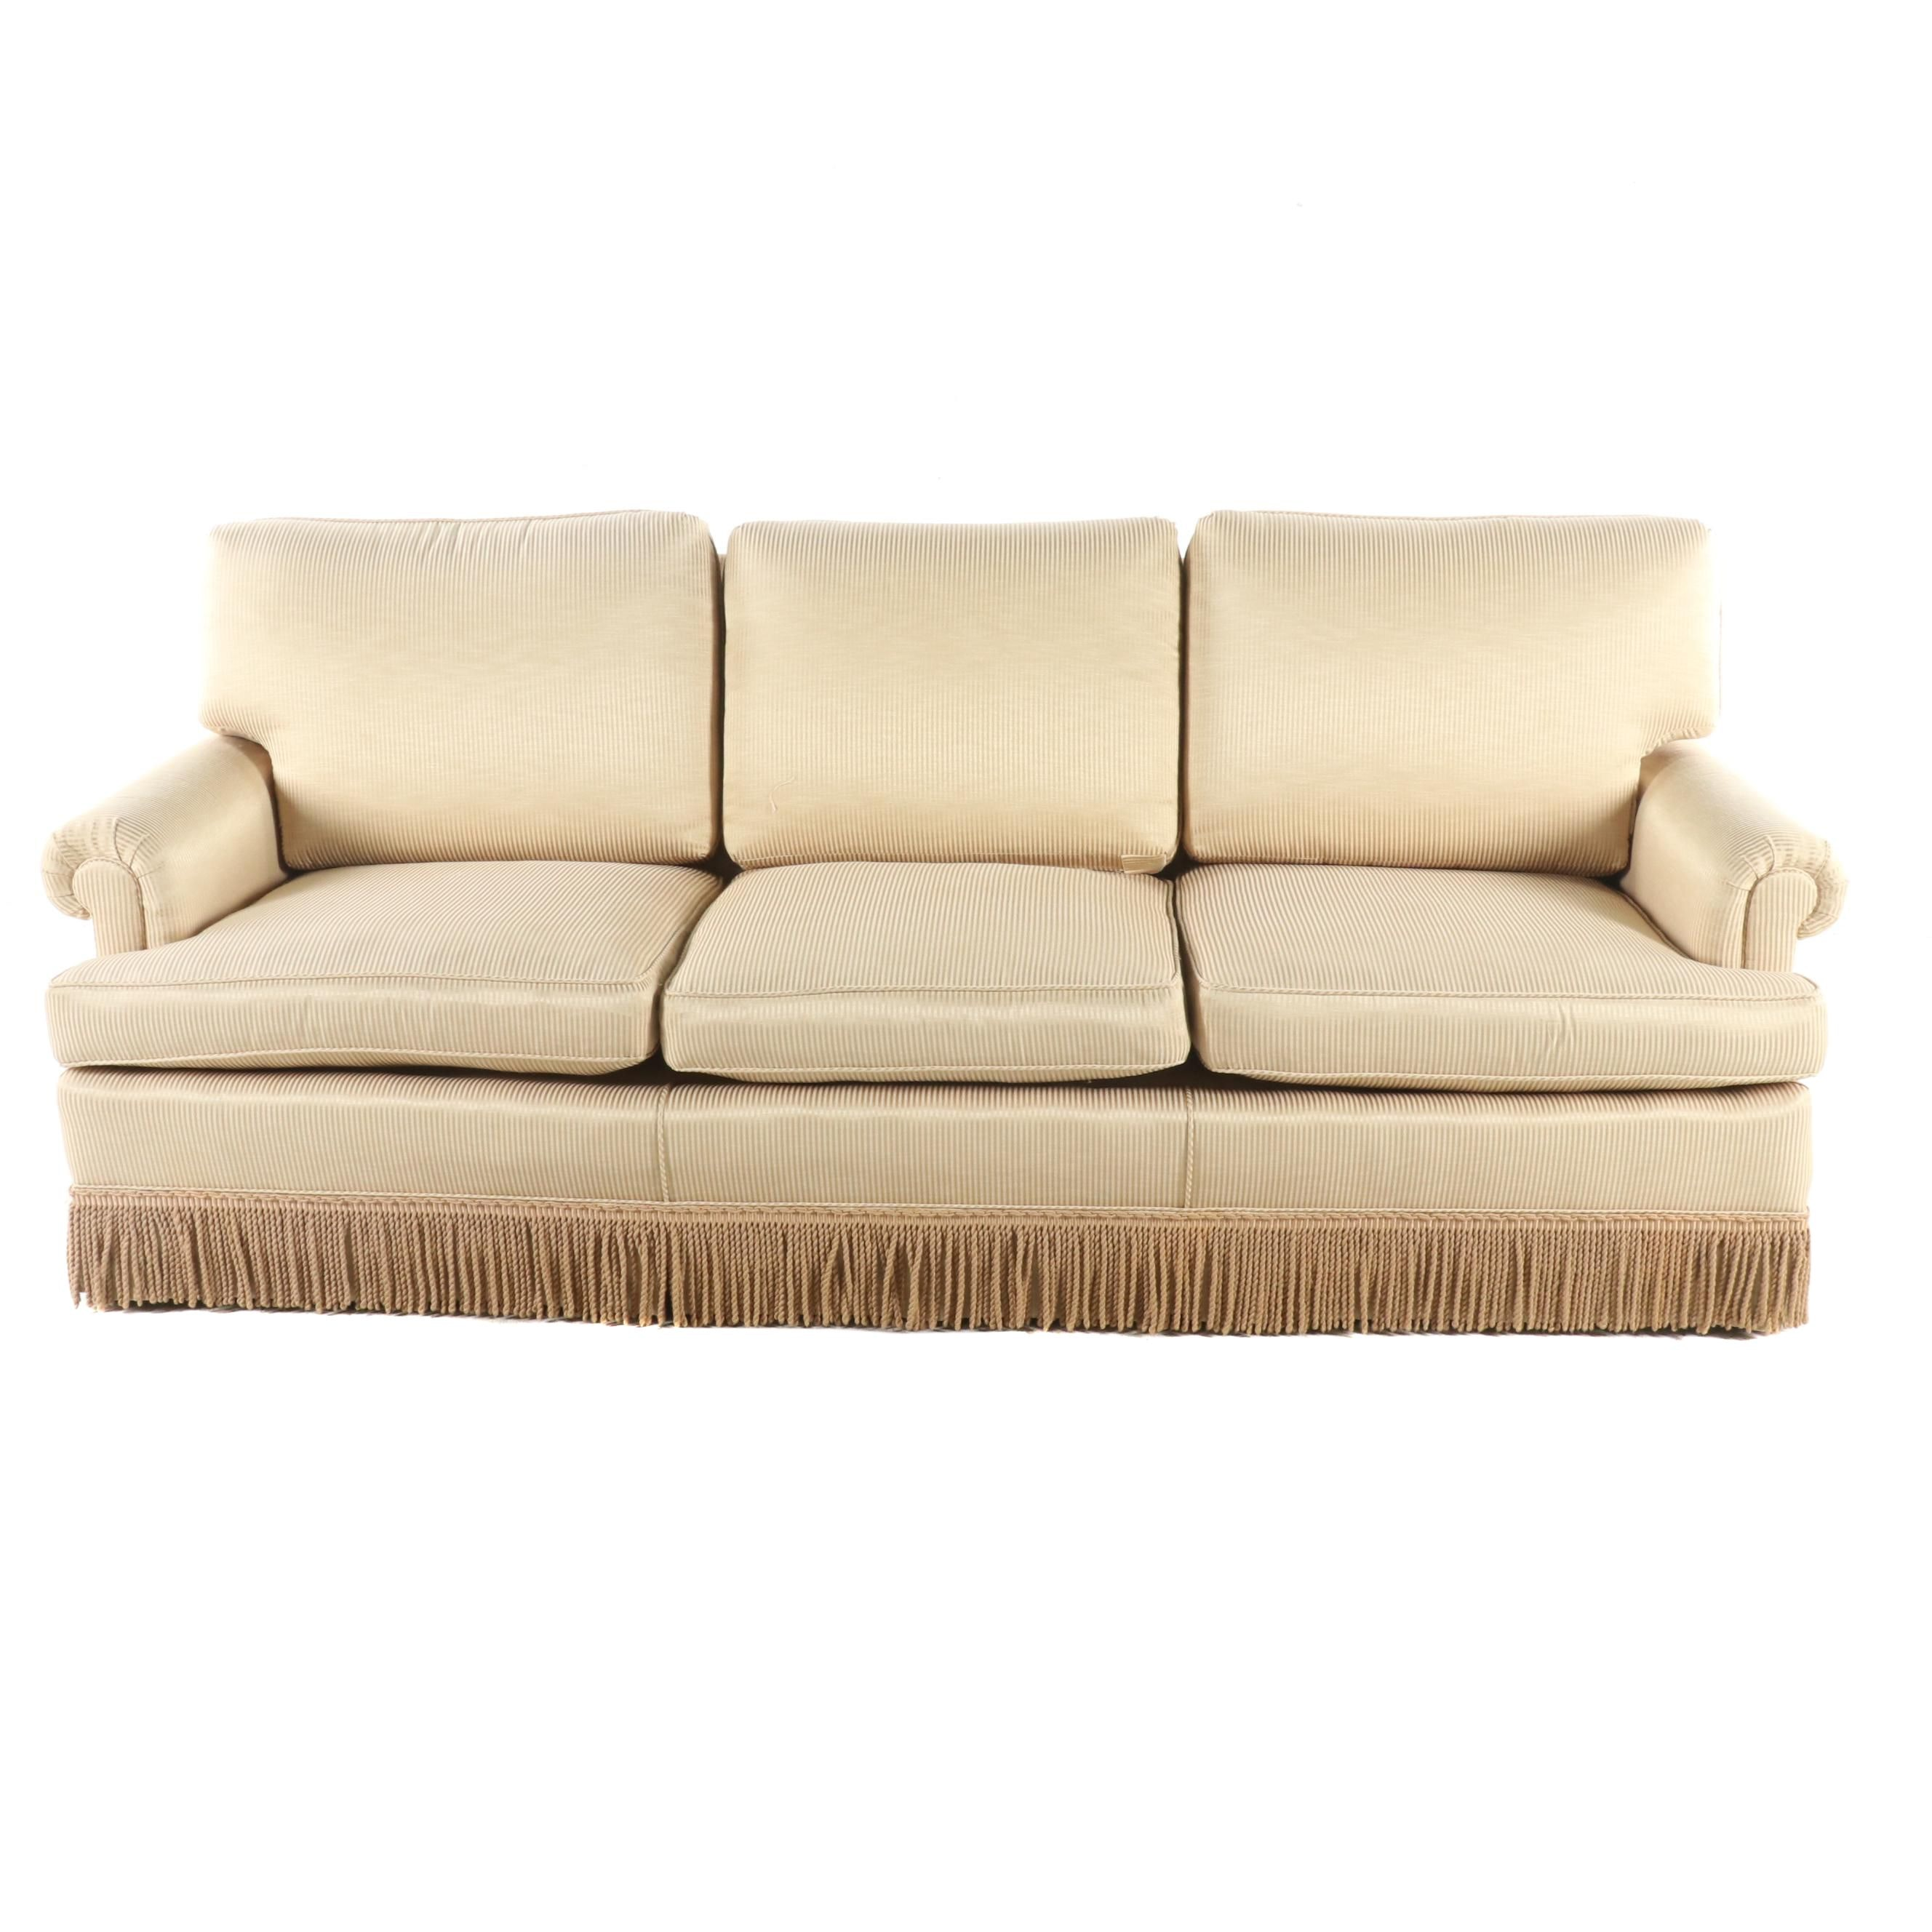 Contemporary Light Gold Pinstripe Upholstered Sofa